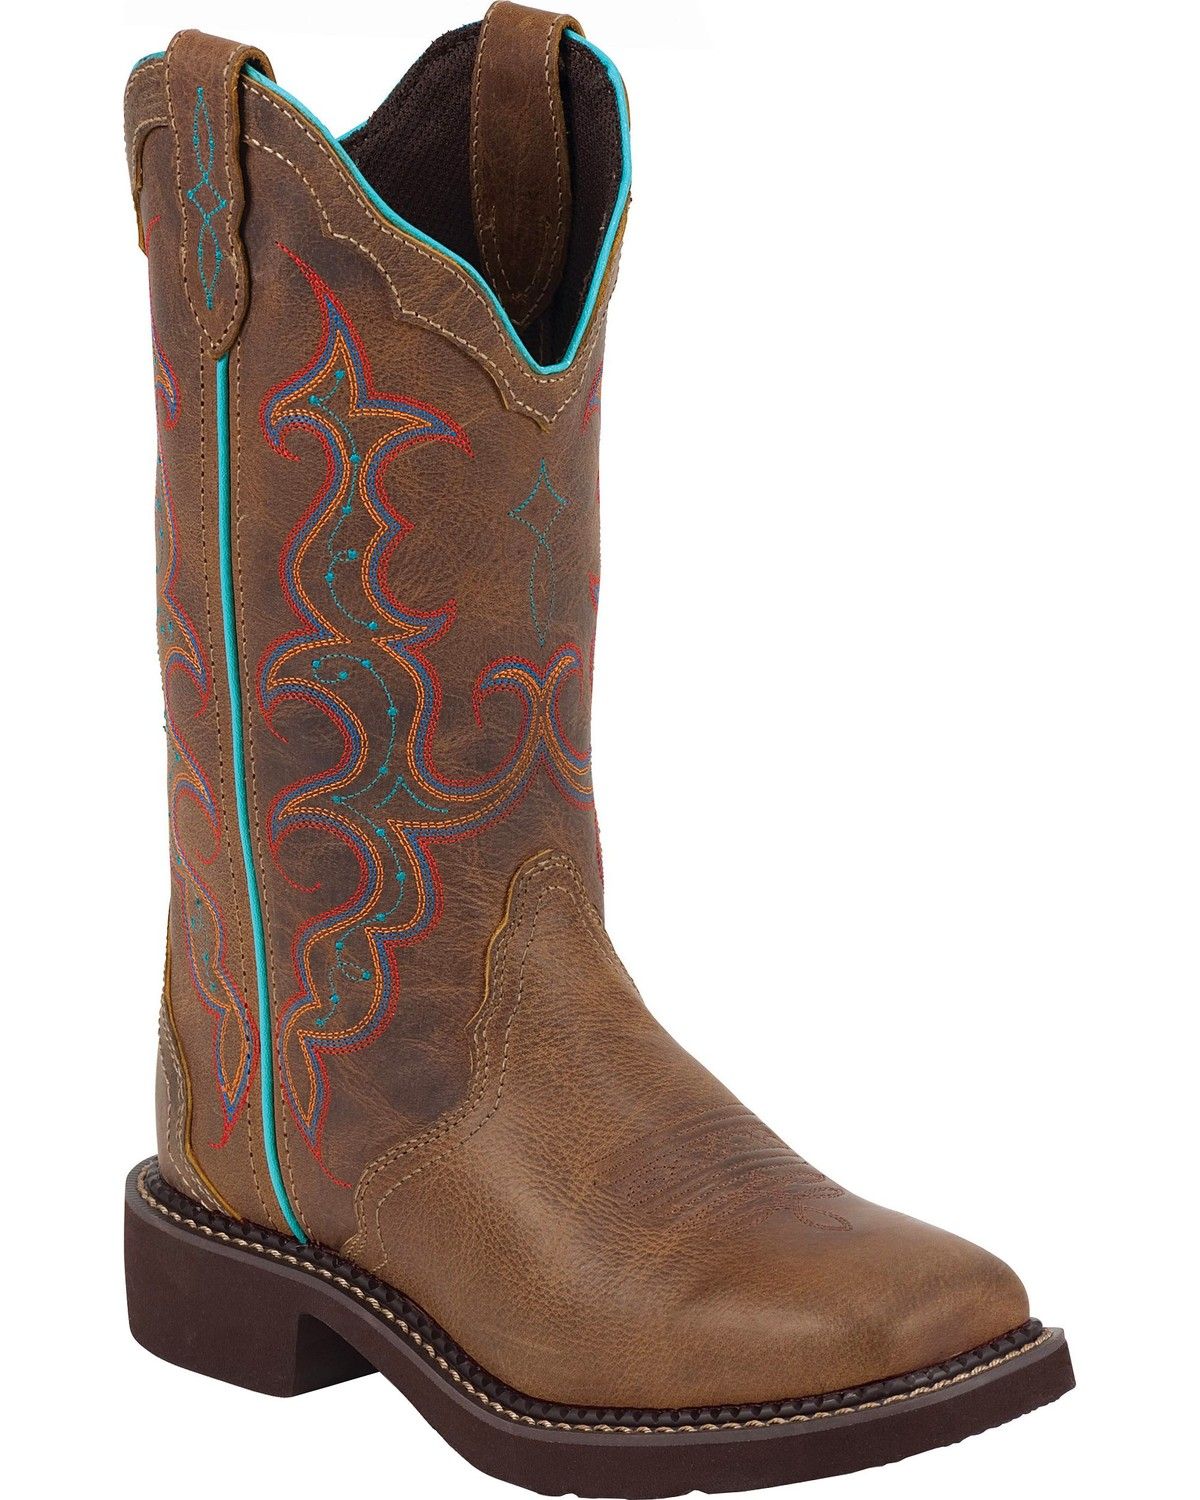 0b039ad54d9 Justin Gypsy Women's Square Toe Western Boots